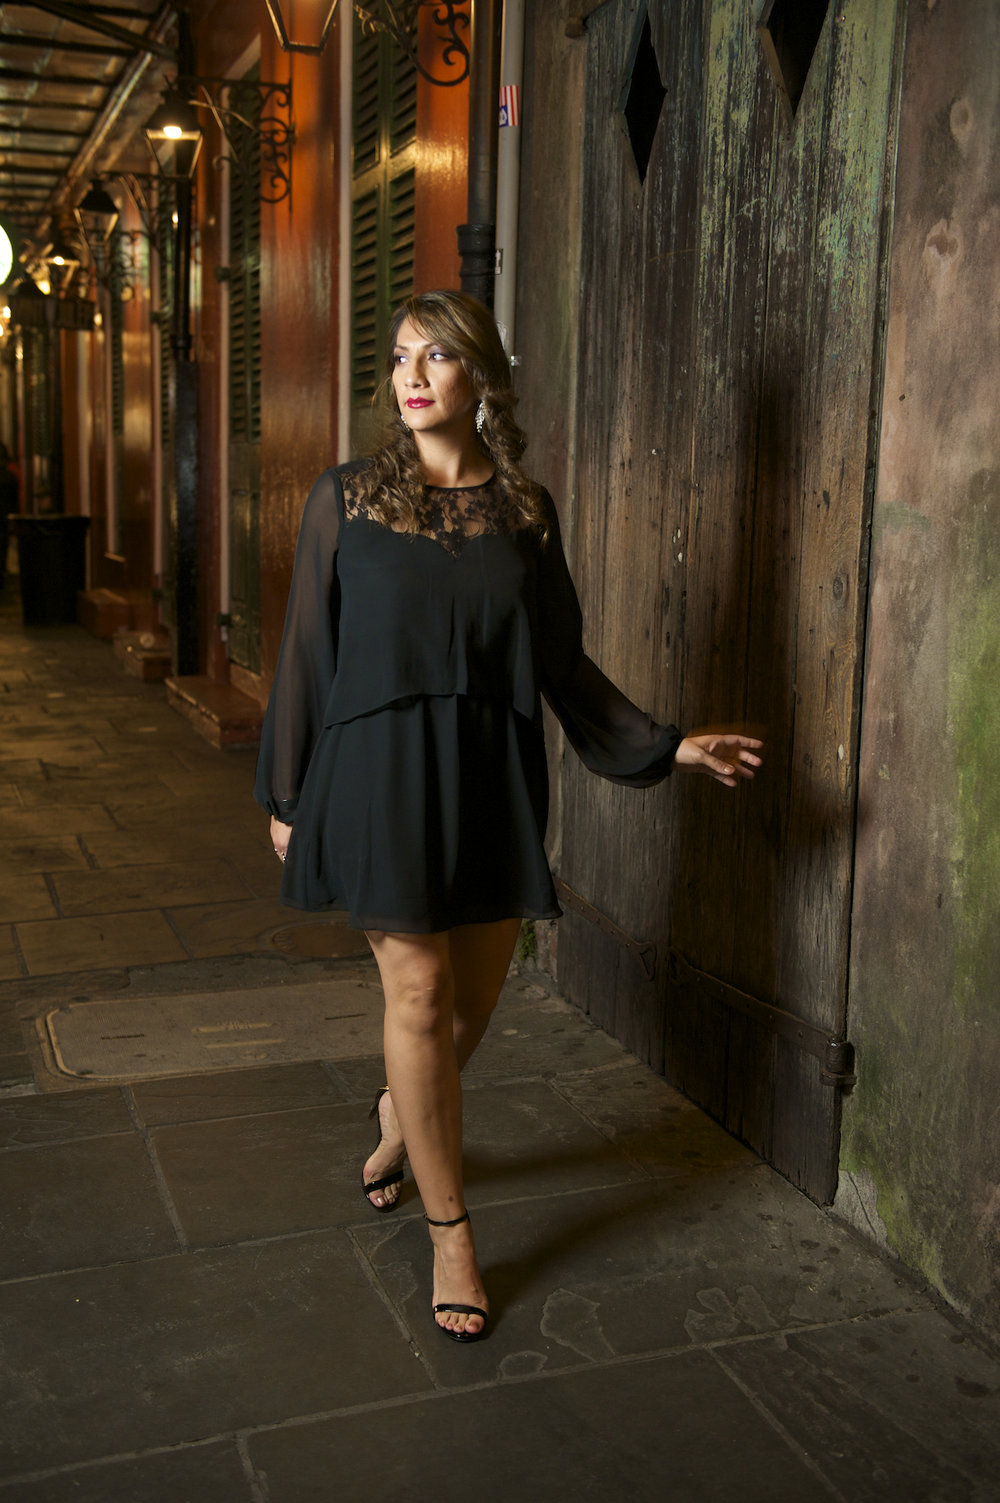 Julizza in front of Preservation Hall in the French Quarter of New Orleans, photographed by New Orleans based photographer, Marc Pagani